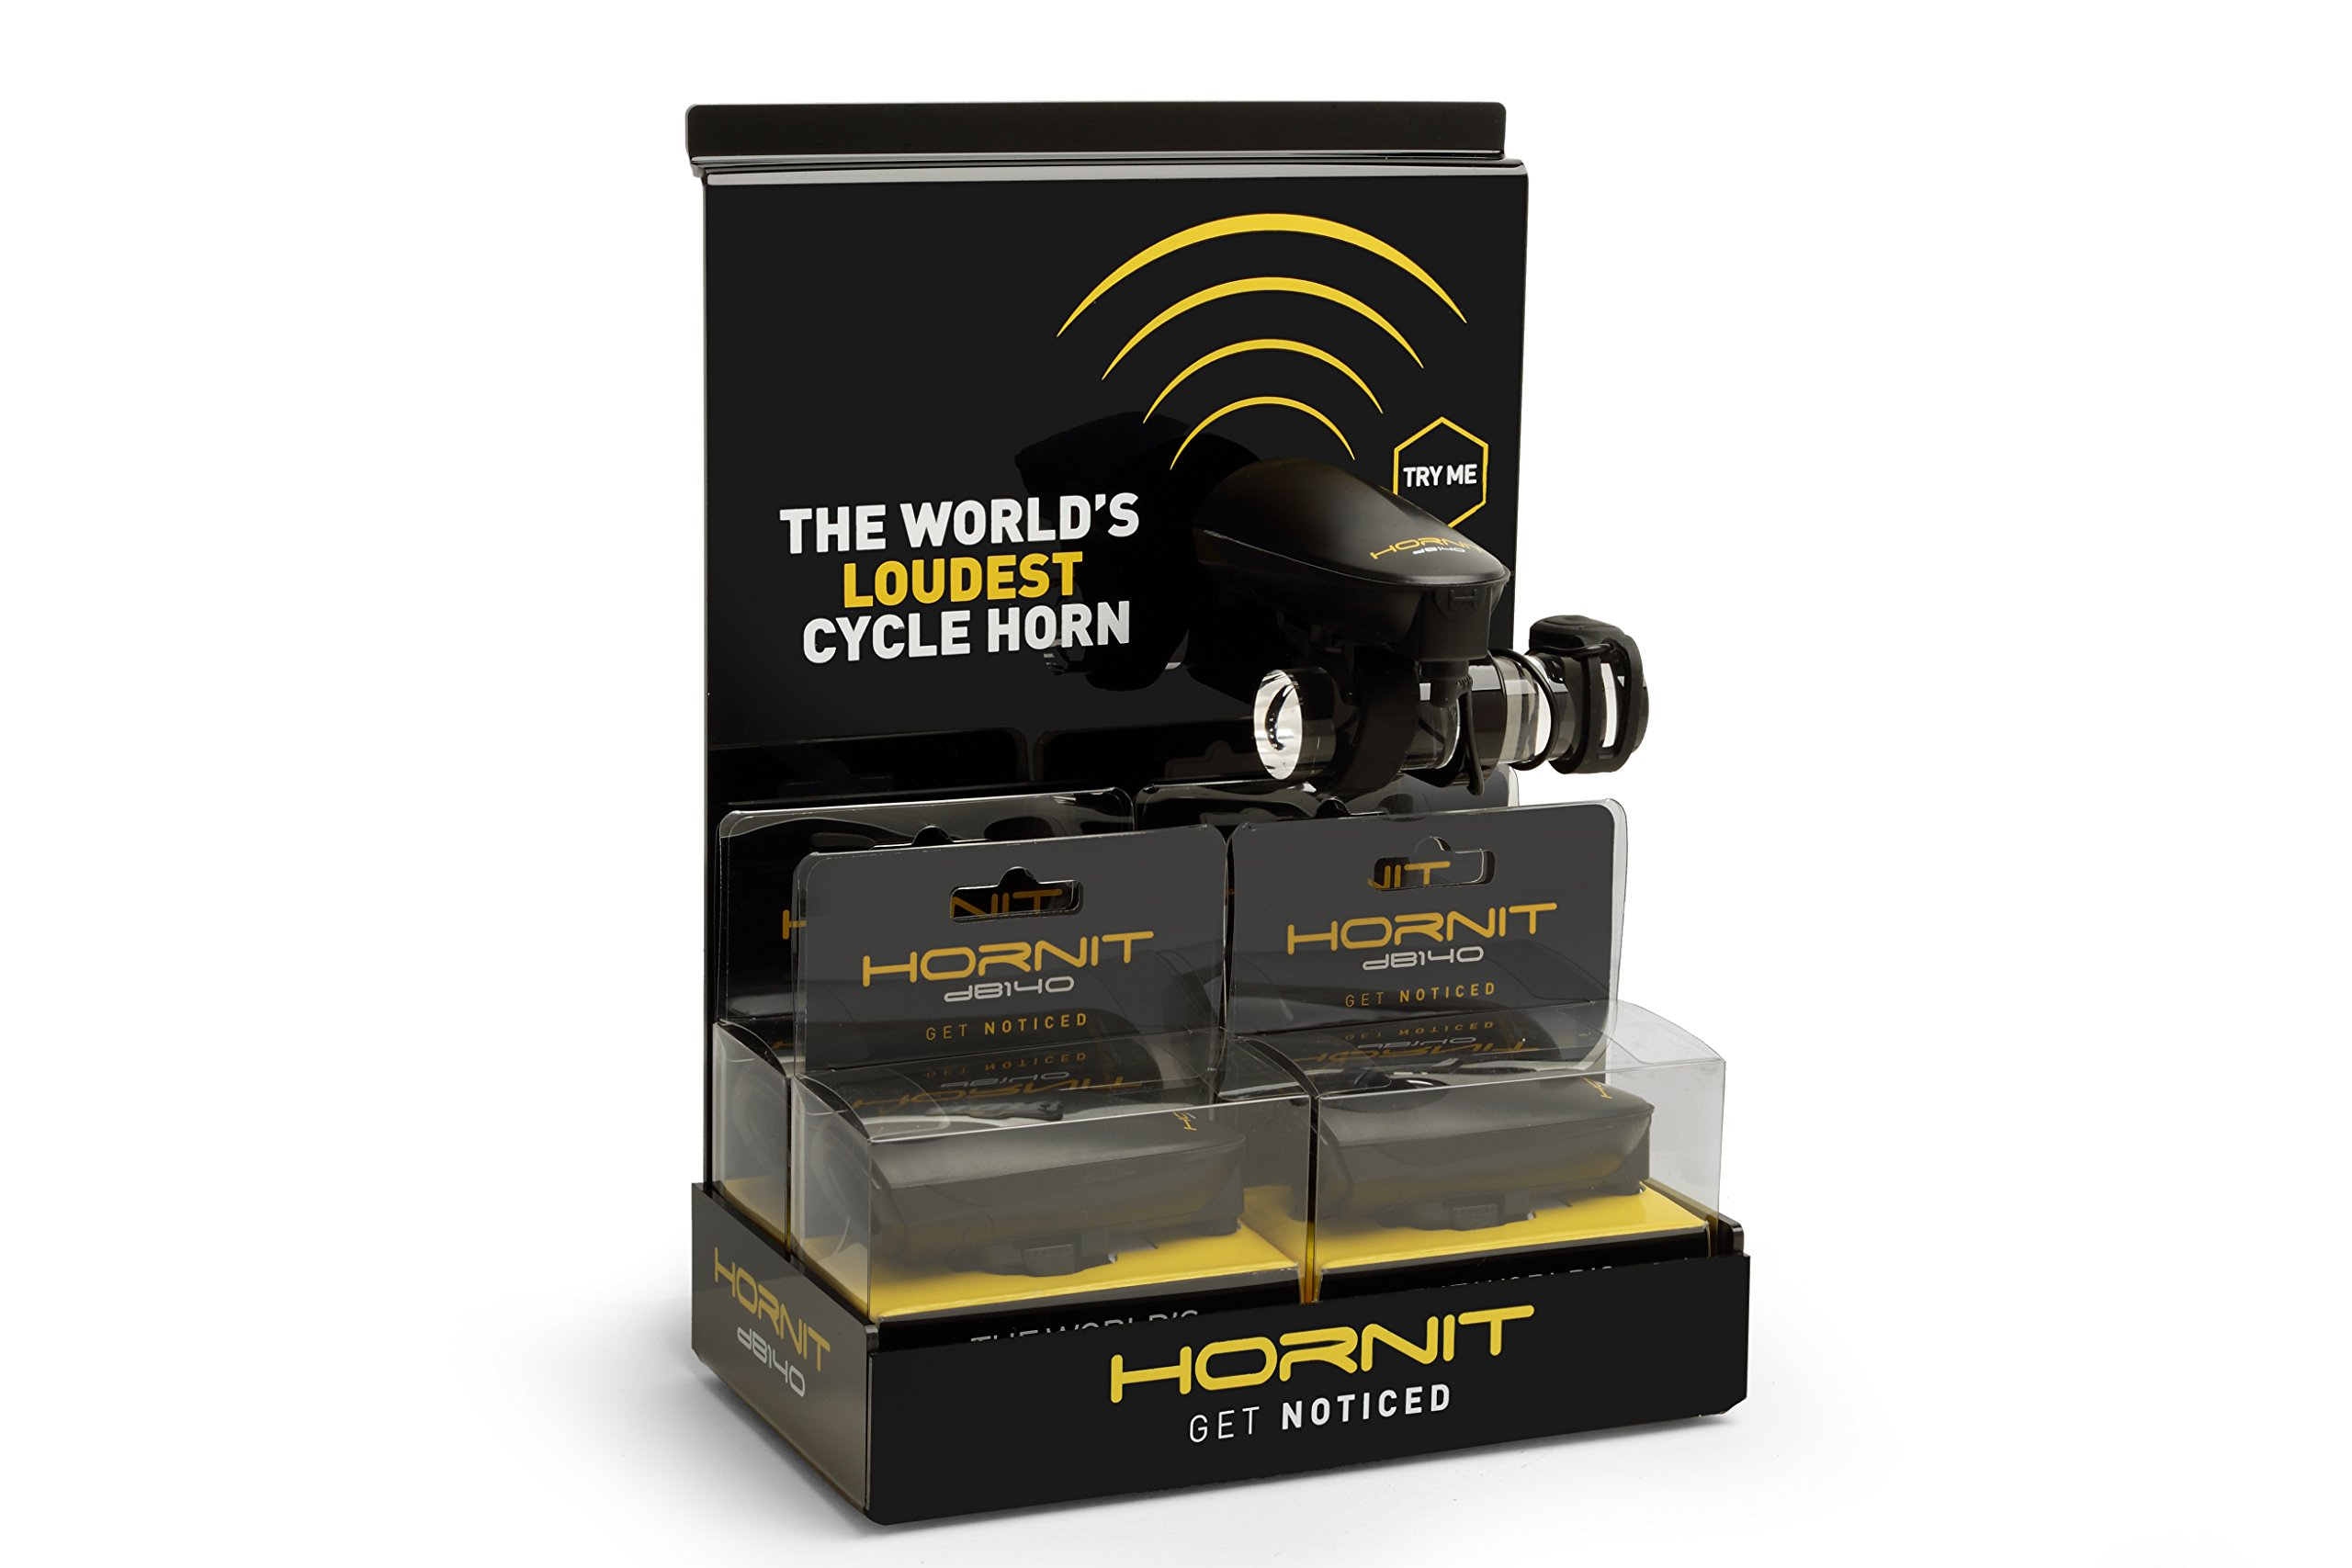 Hornit dB140 Cycle Horn with Remote Trigger by Hornit (Image #10)